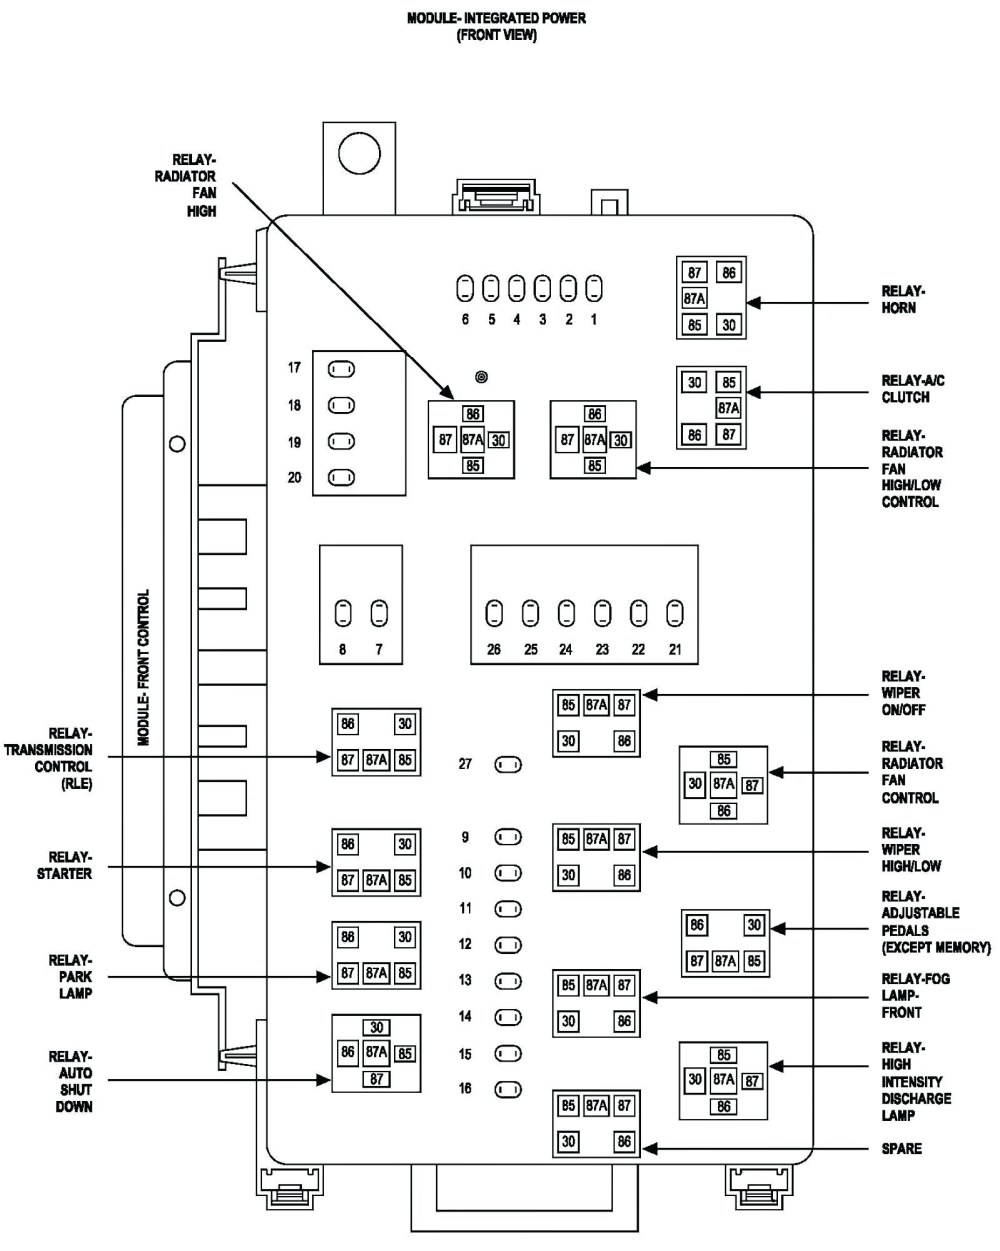 medium resolution of 2008 magnum fuse diagram wiring diagram expert 05 dodge magnum interior fuse box diagram 05 magnum fuse diagram